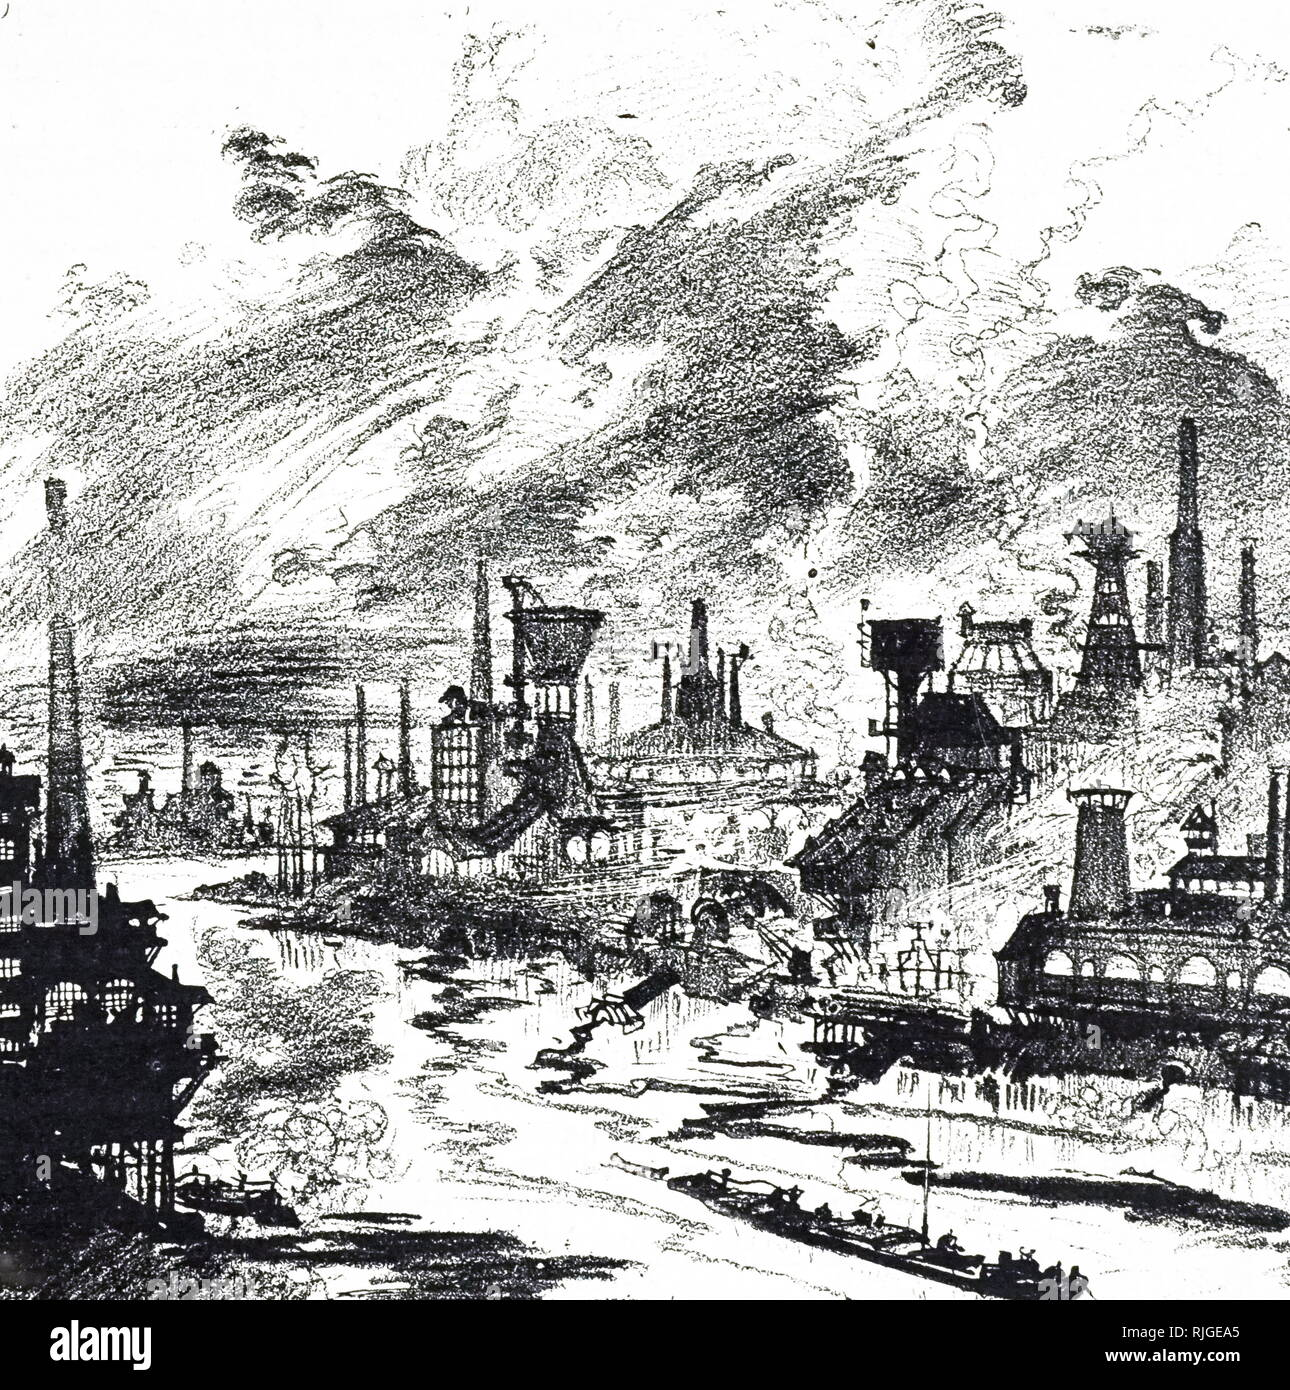 An engraving depicting an author's idea of environmental pollution in the 1950s if the Chemical industry continued to 'progress'. Dated 19th century - Stock Image